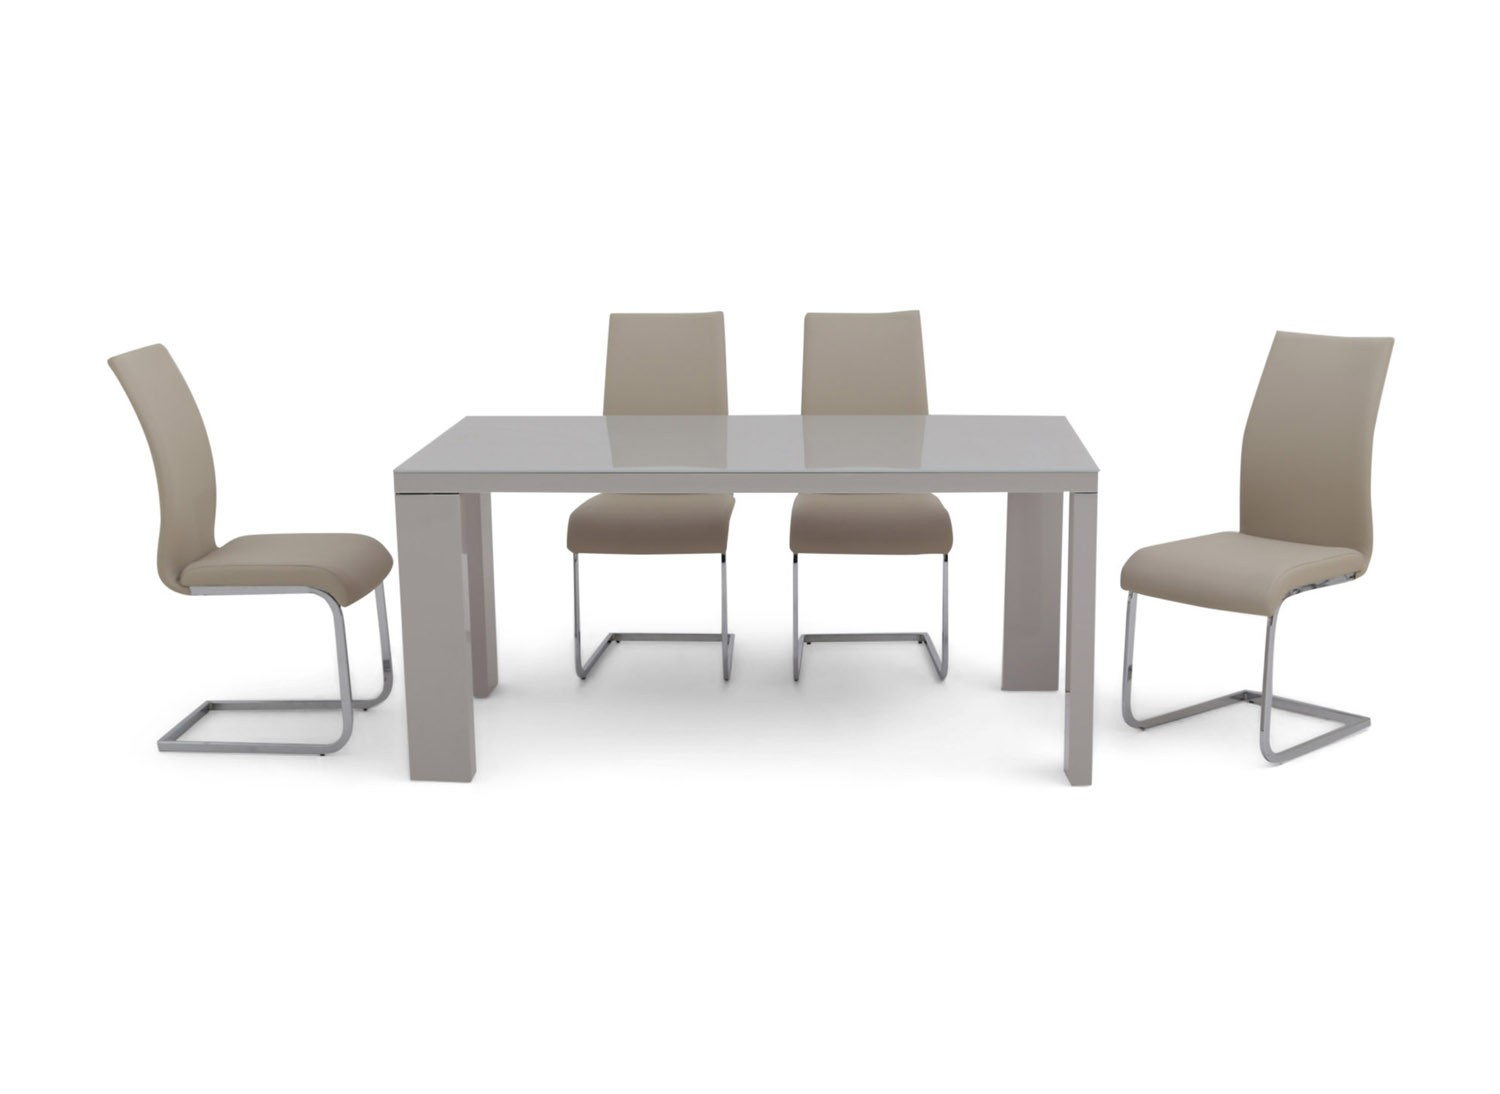 https://www.firstfurniture.co.uk/pub/media/catalog/product/f/a/fairmont_lucca_grey_high_gloss_dining_table_6_paolo_black_chairs.jpg